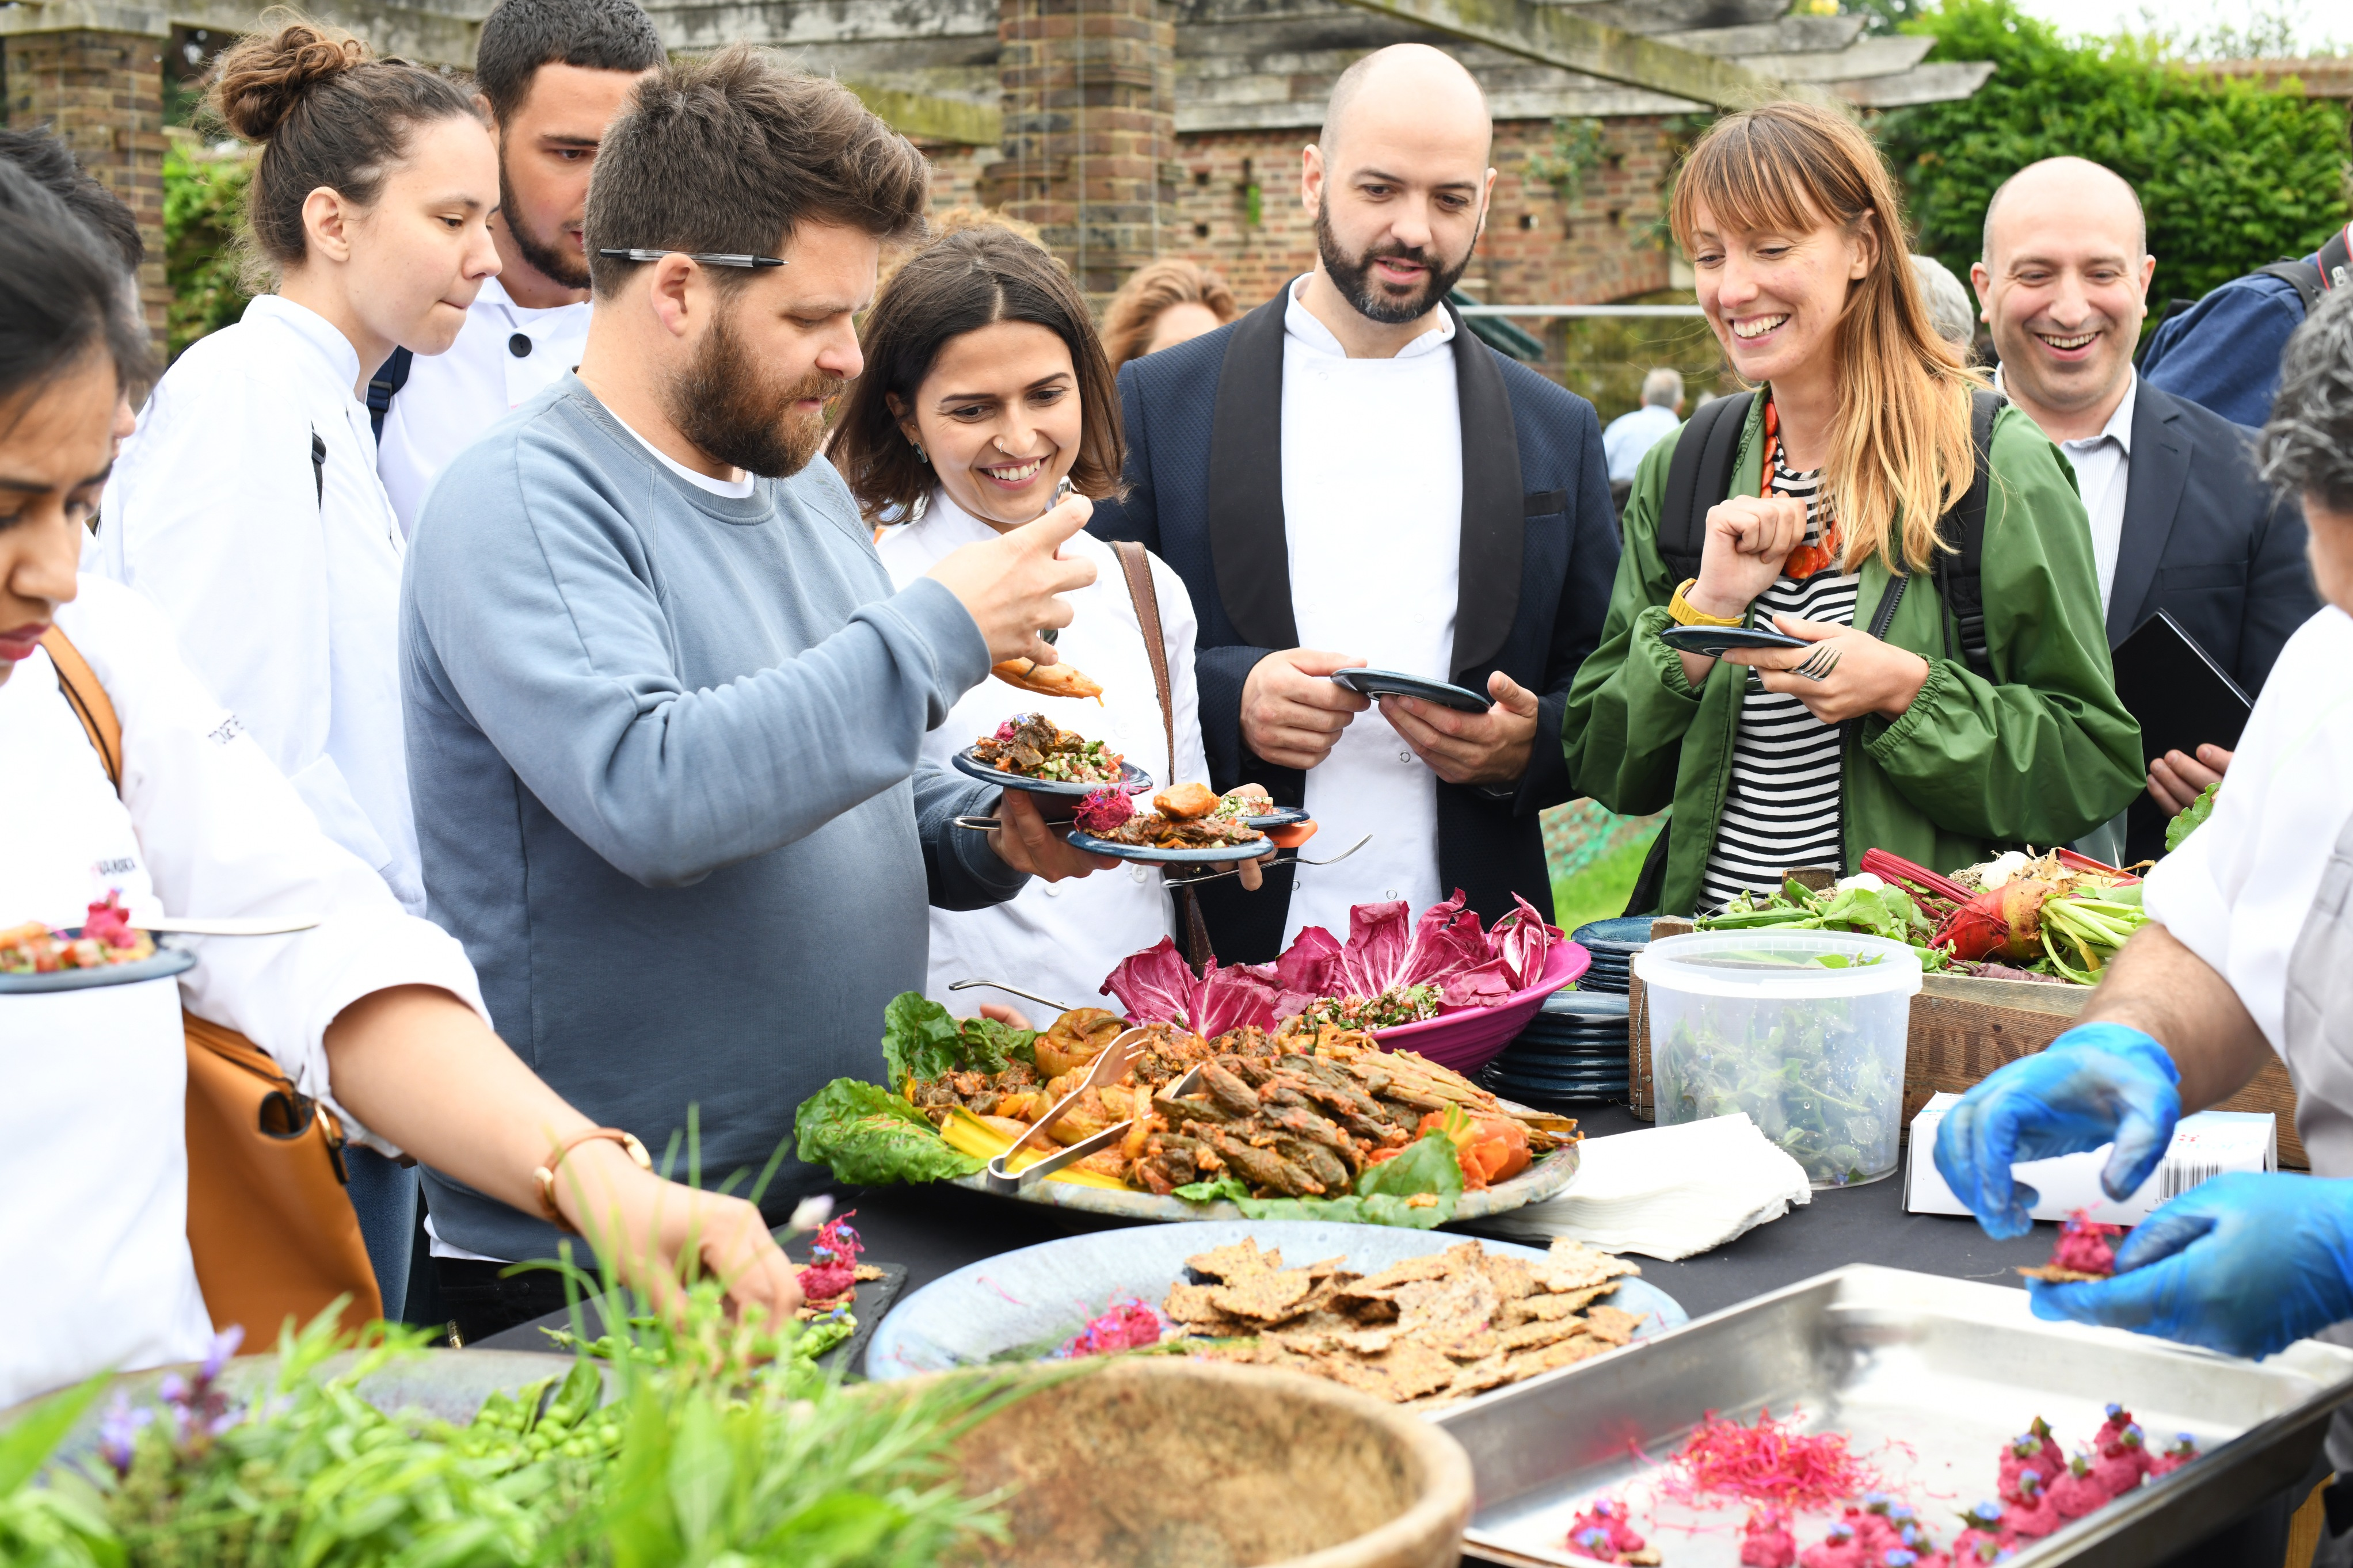 The chefs sampling food in the Kitchen Garden